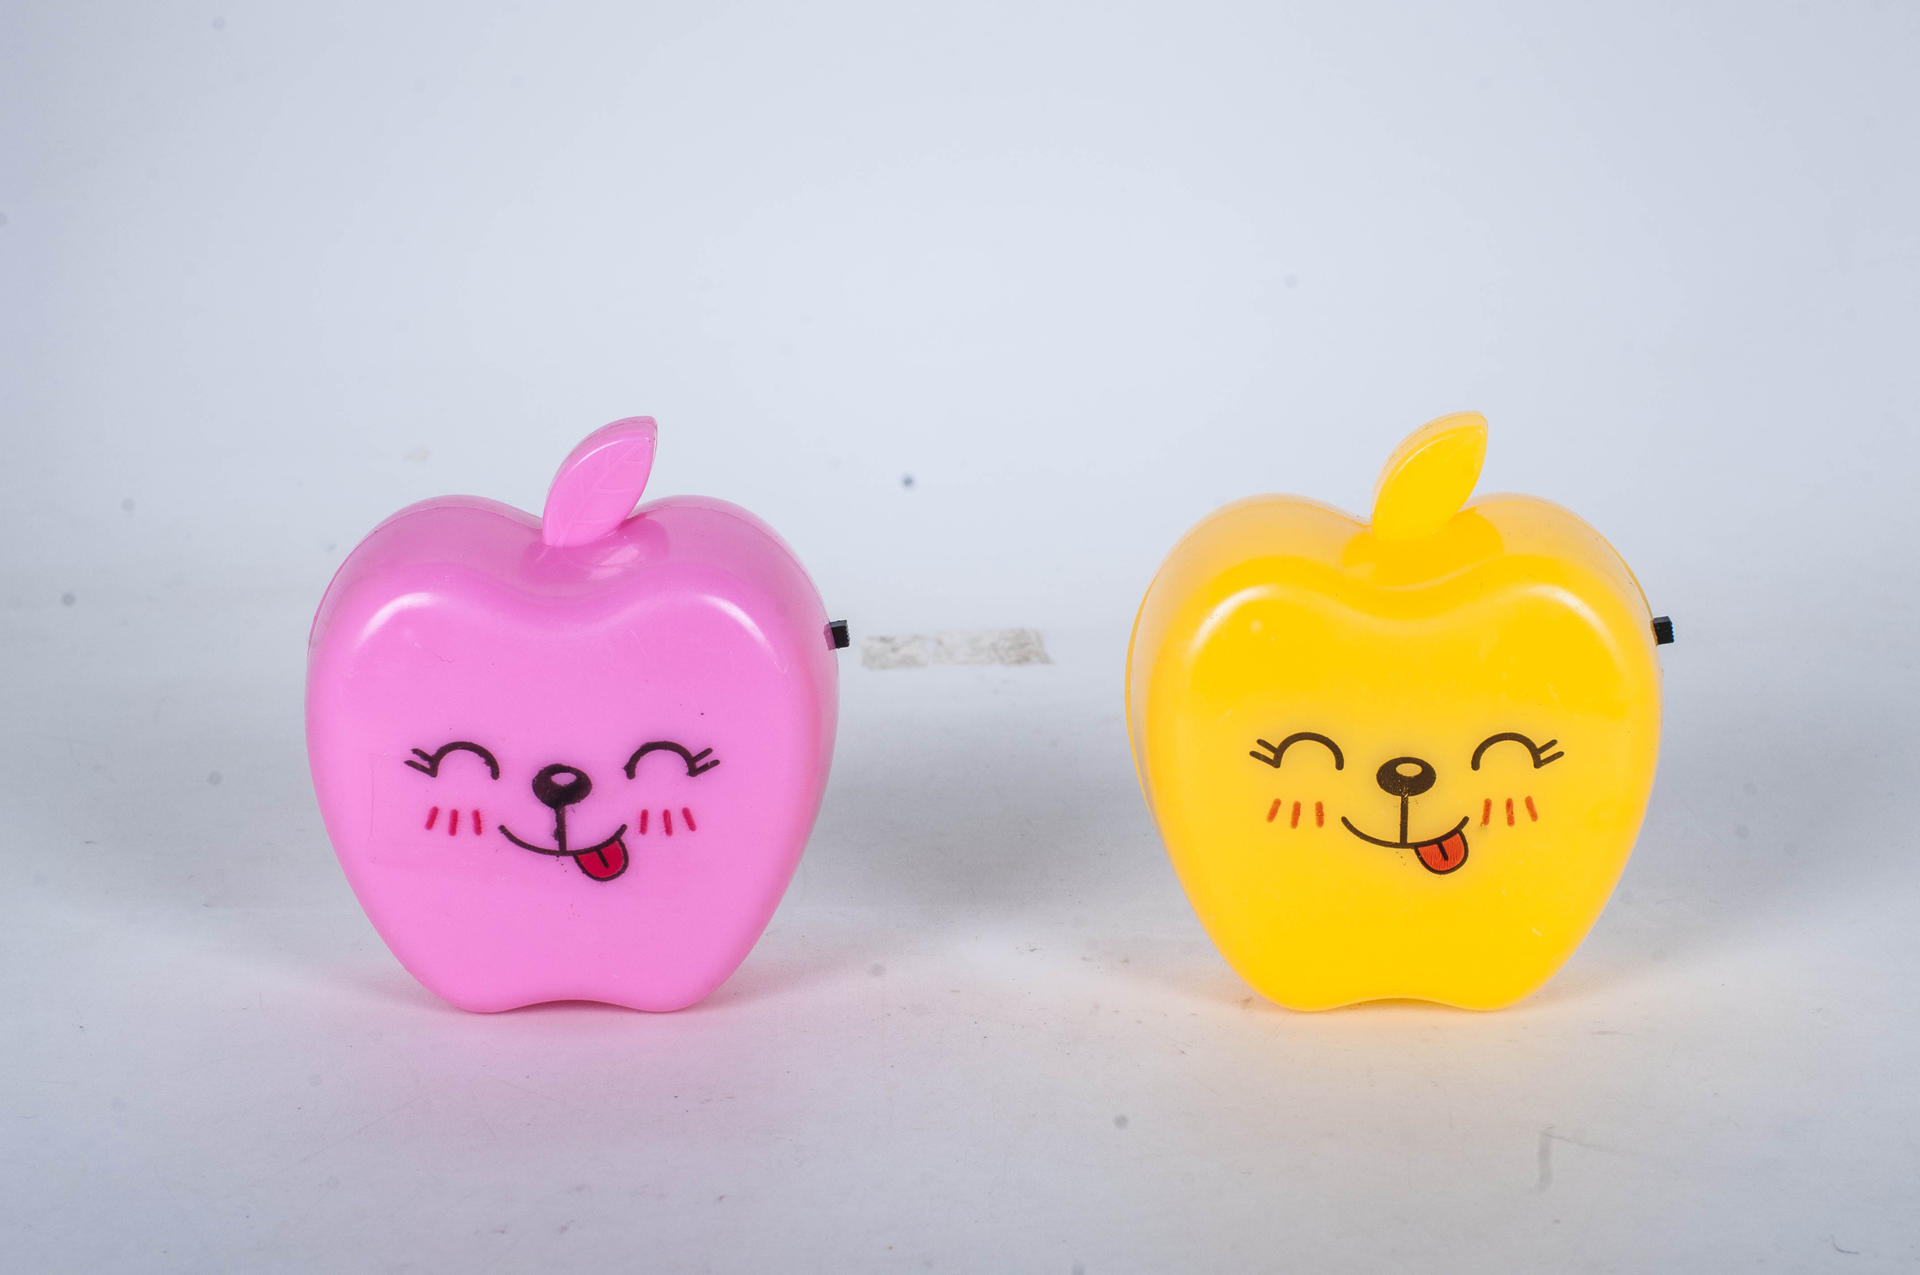 Fruit Apple shape LED SMD mini switch plug in night light with 0.6W and 110V or 220V